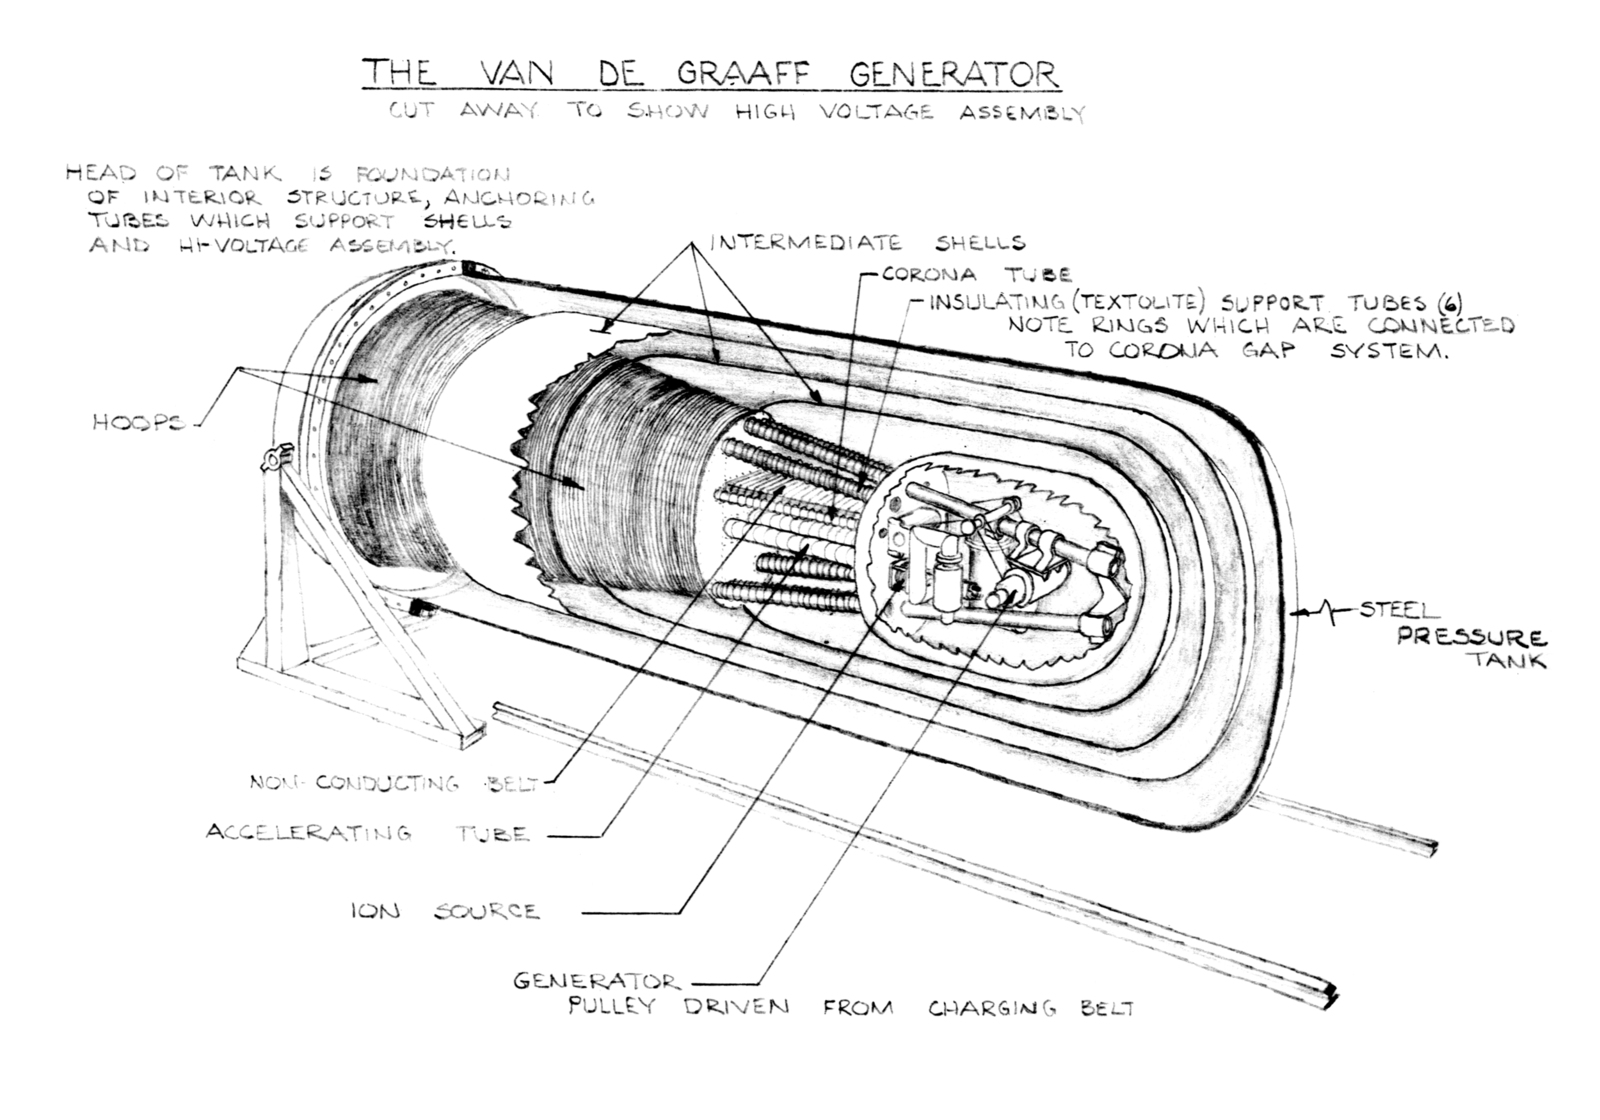 hight resolution of cutaway drawing of van de graaff generator showing high voltage assembly date unknown linac